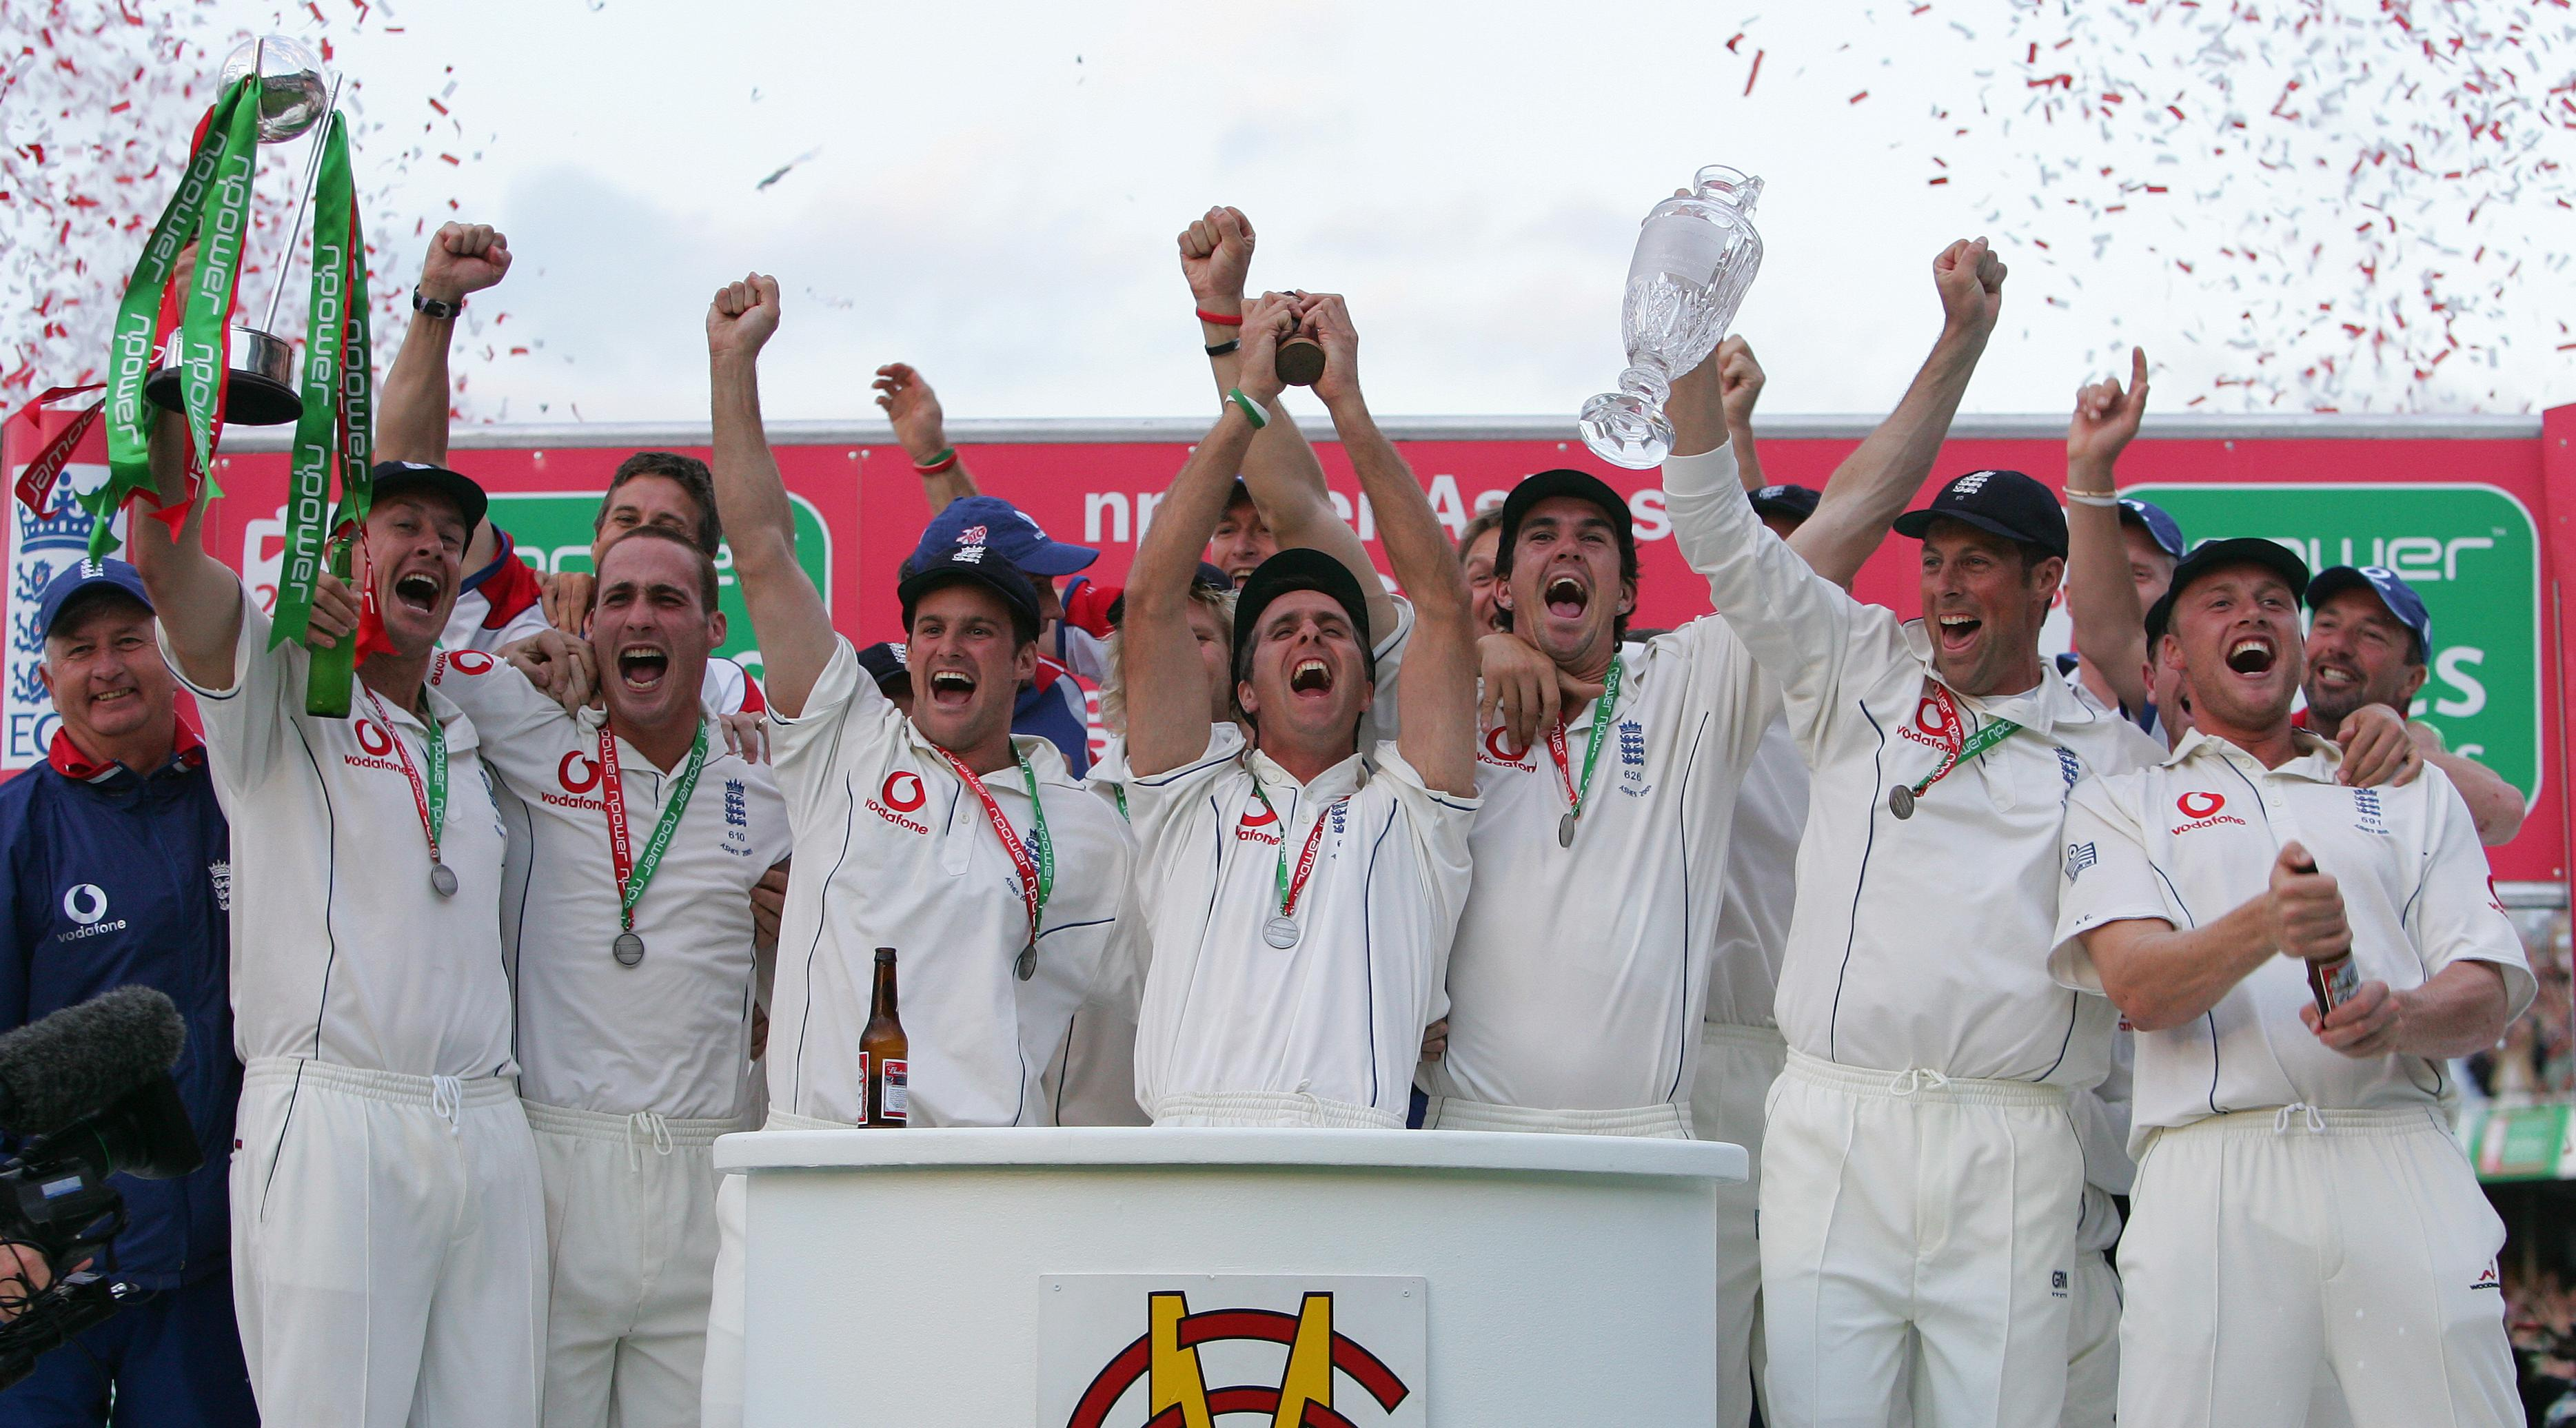 England famously won the 2005 Ashes series, with Kevin Pietersen an integral figure